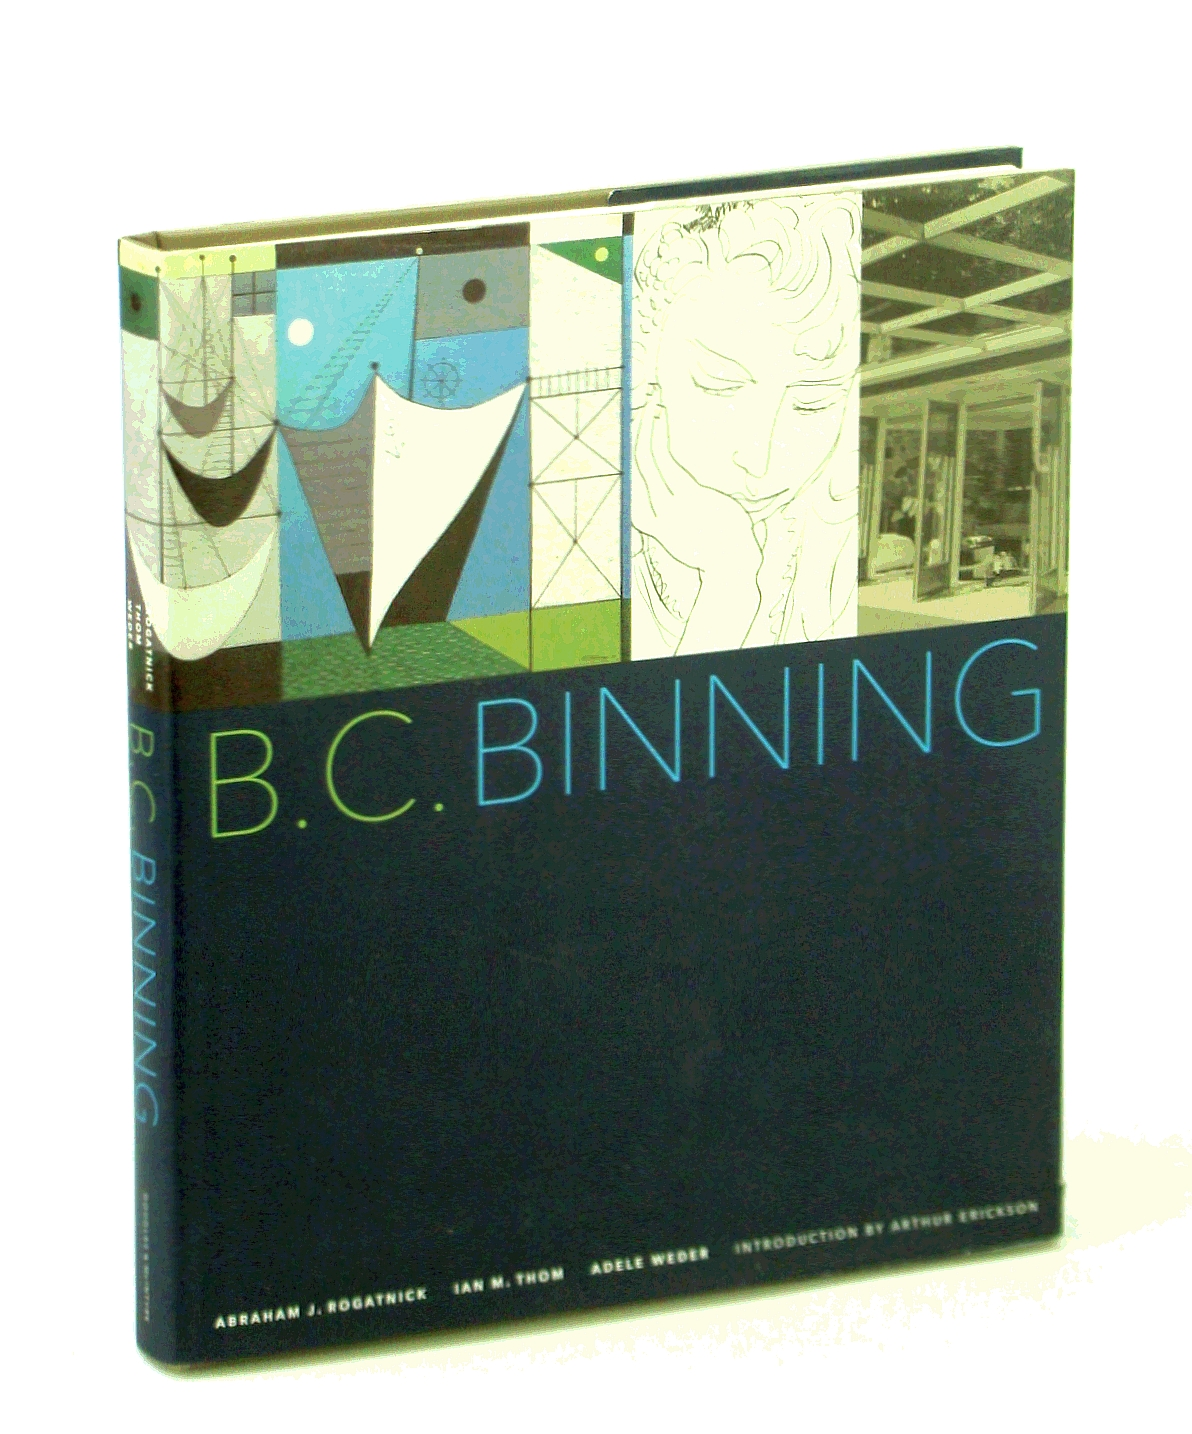 Image for B.C. Binning